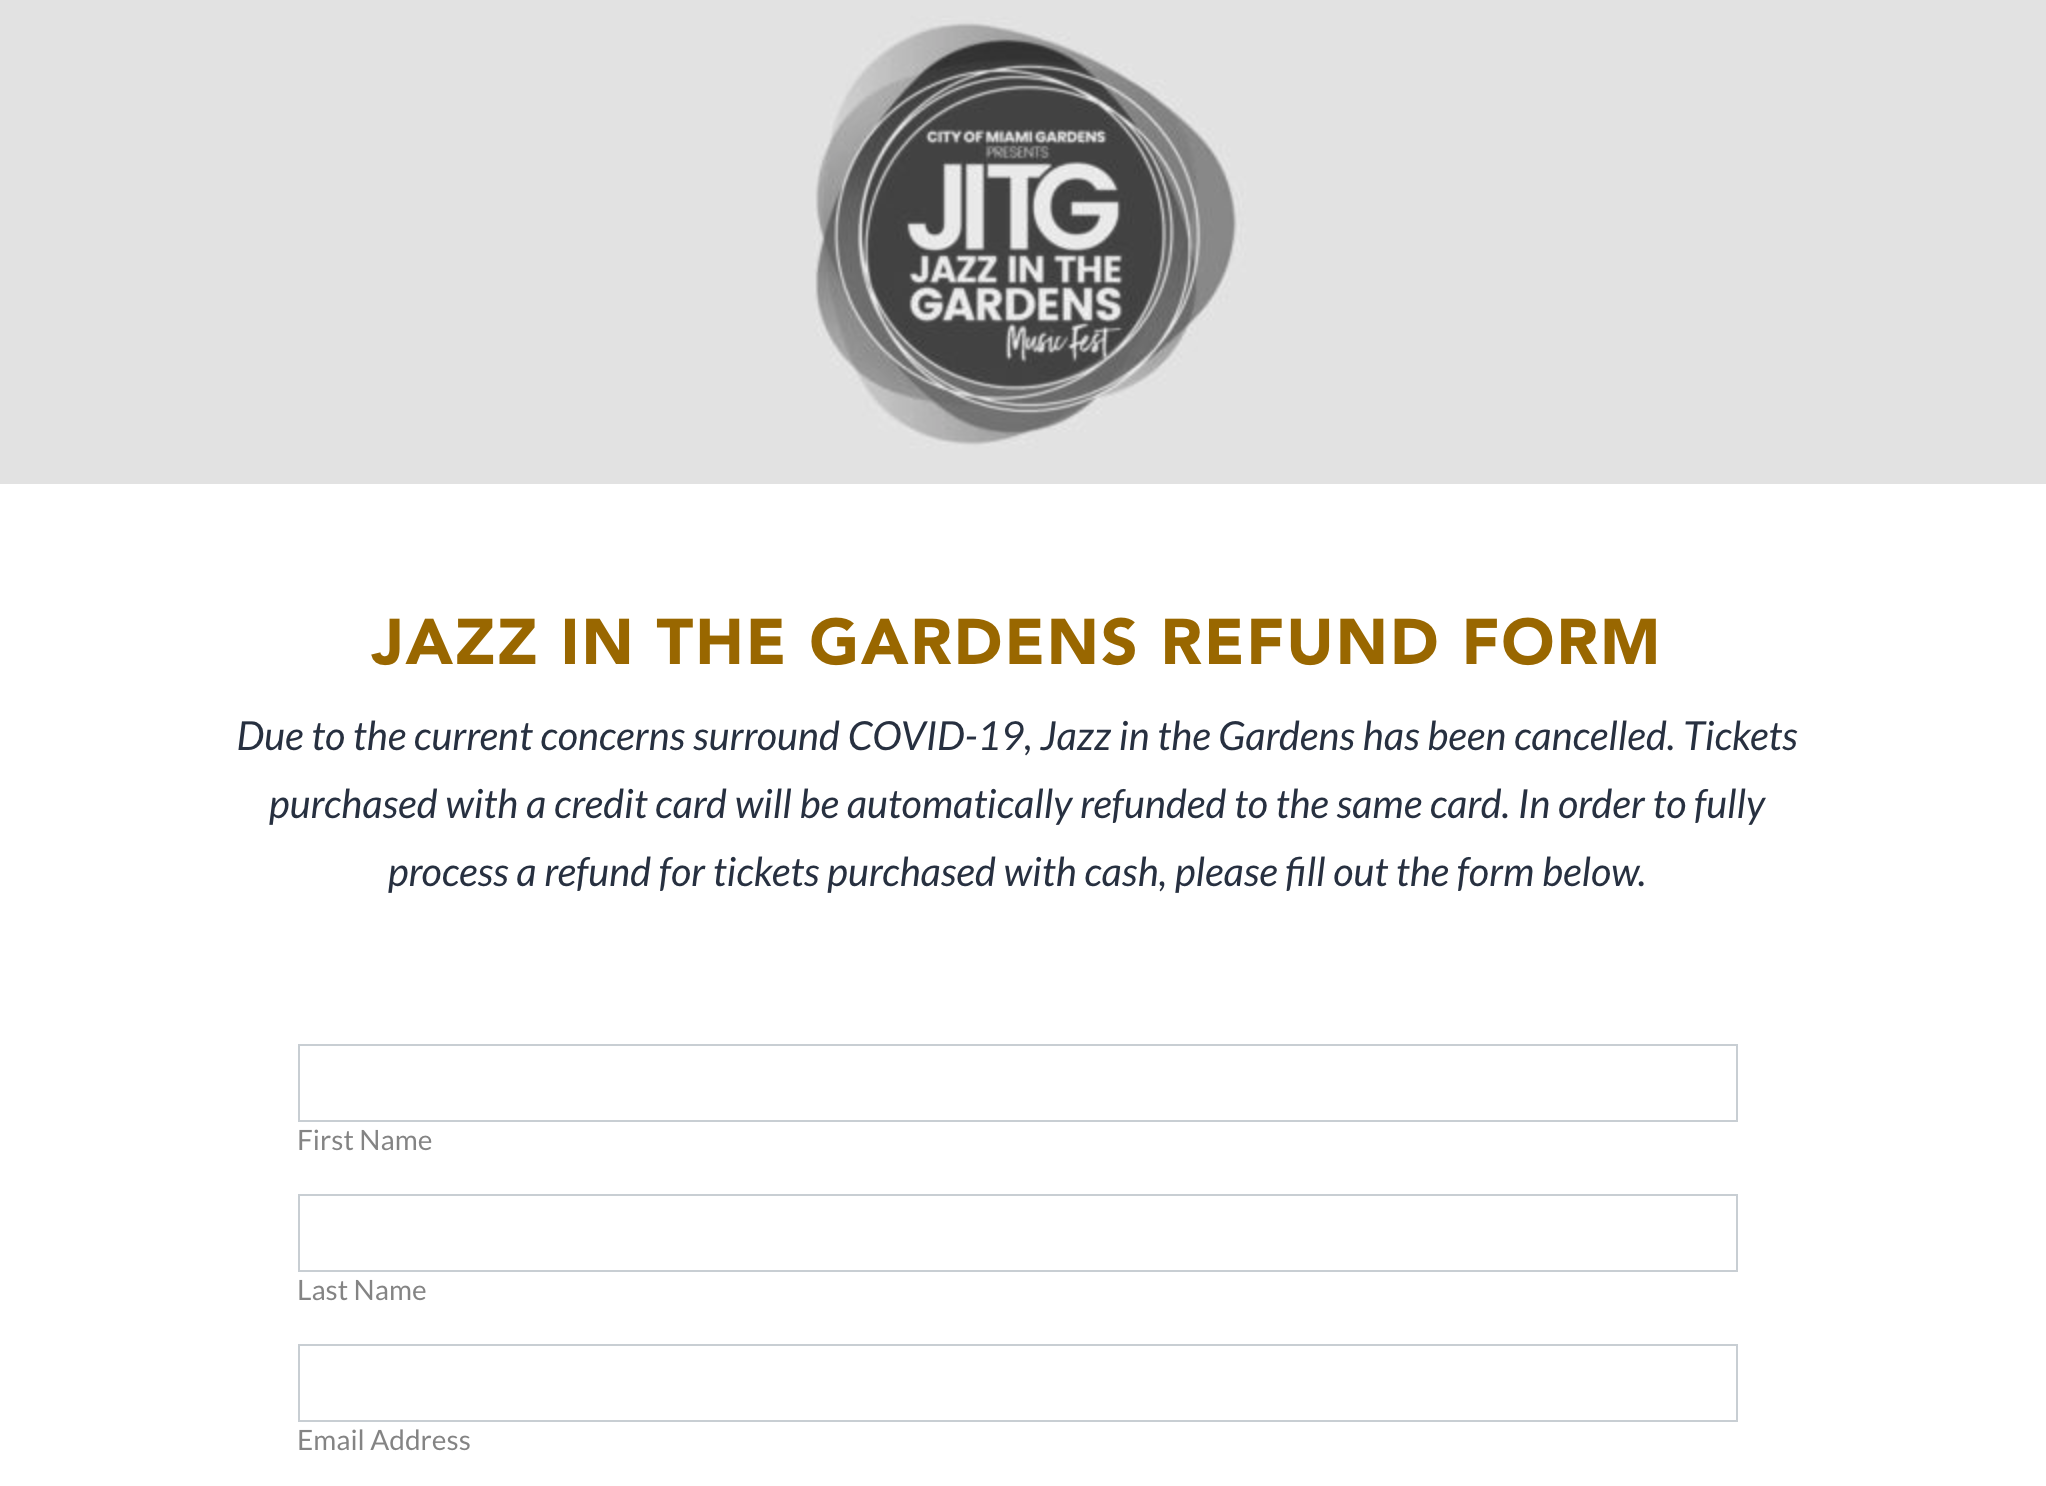 Jazz In the Gardens Refund Form